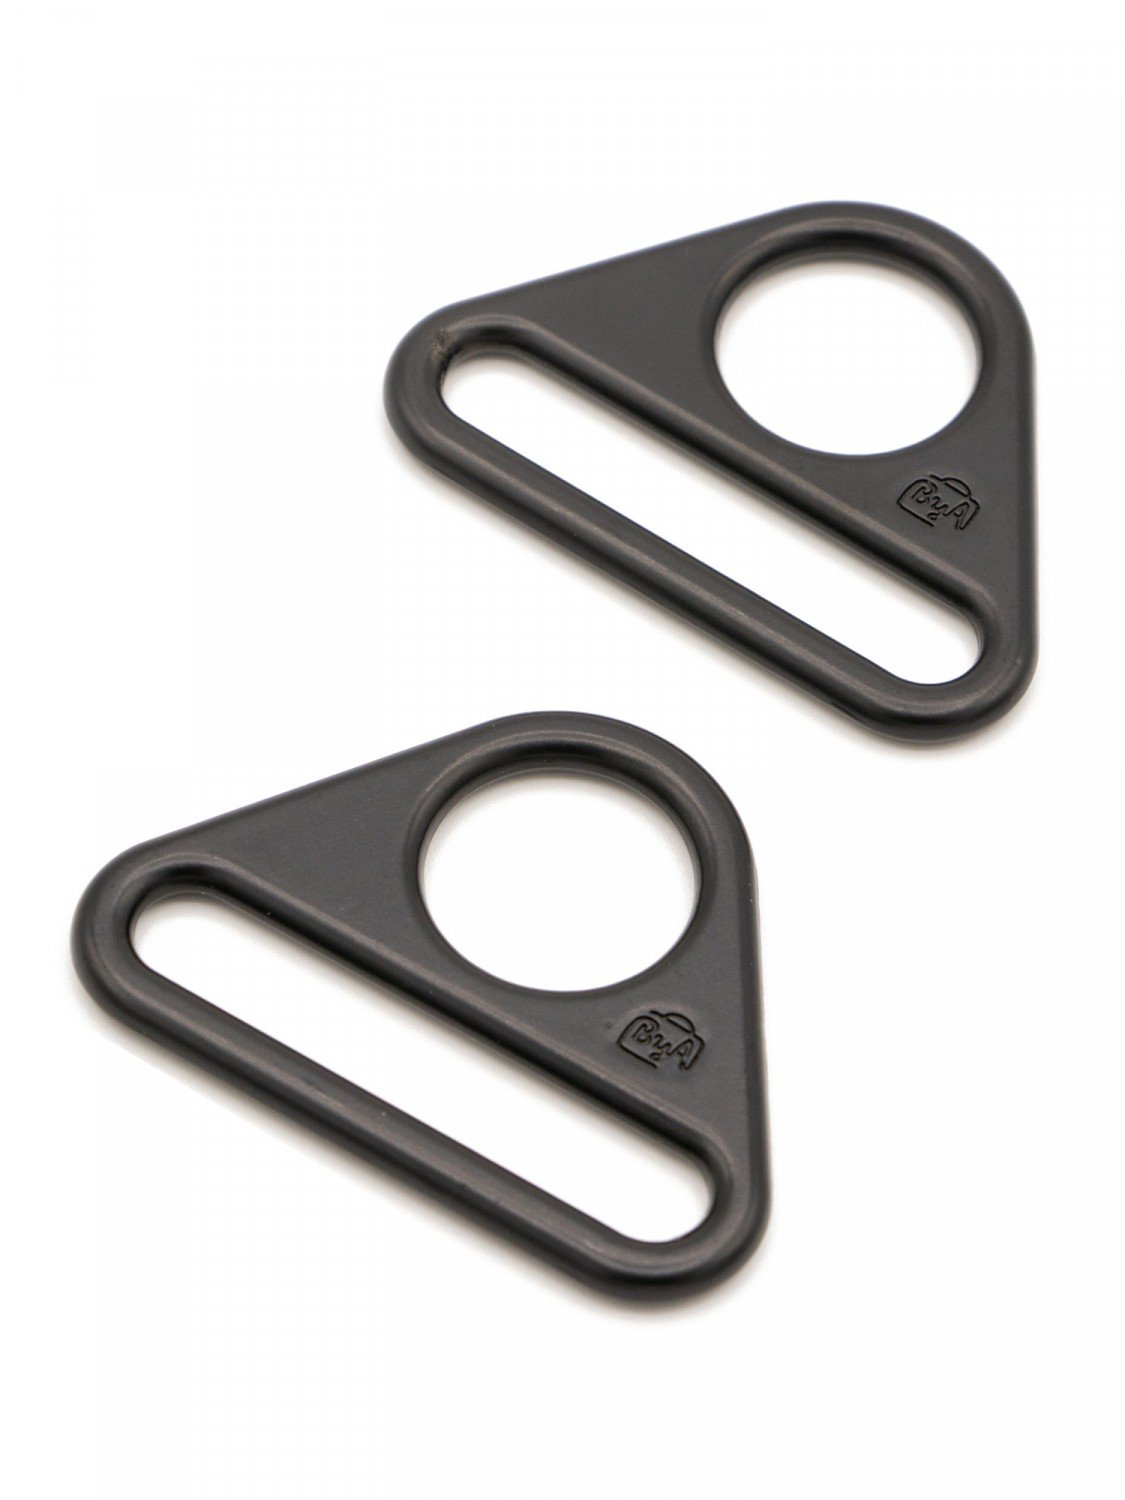 Annie's Flat Triangle Ring - 1.5 (Set of 2)